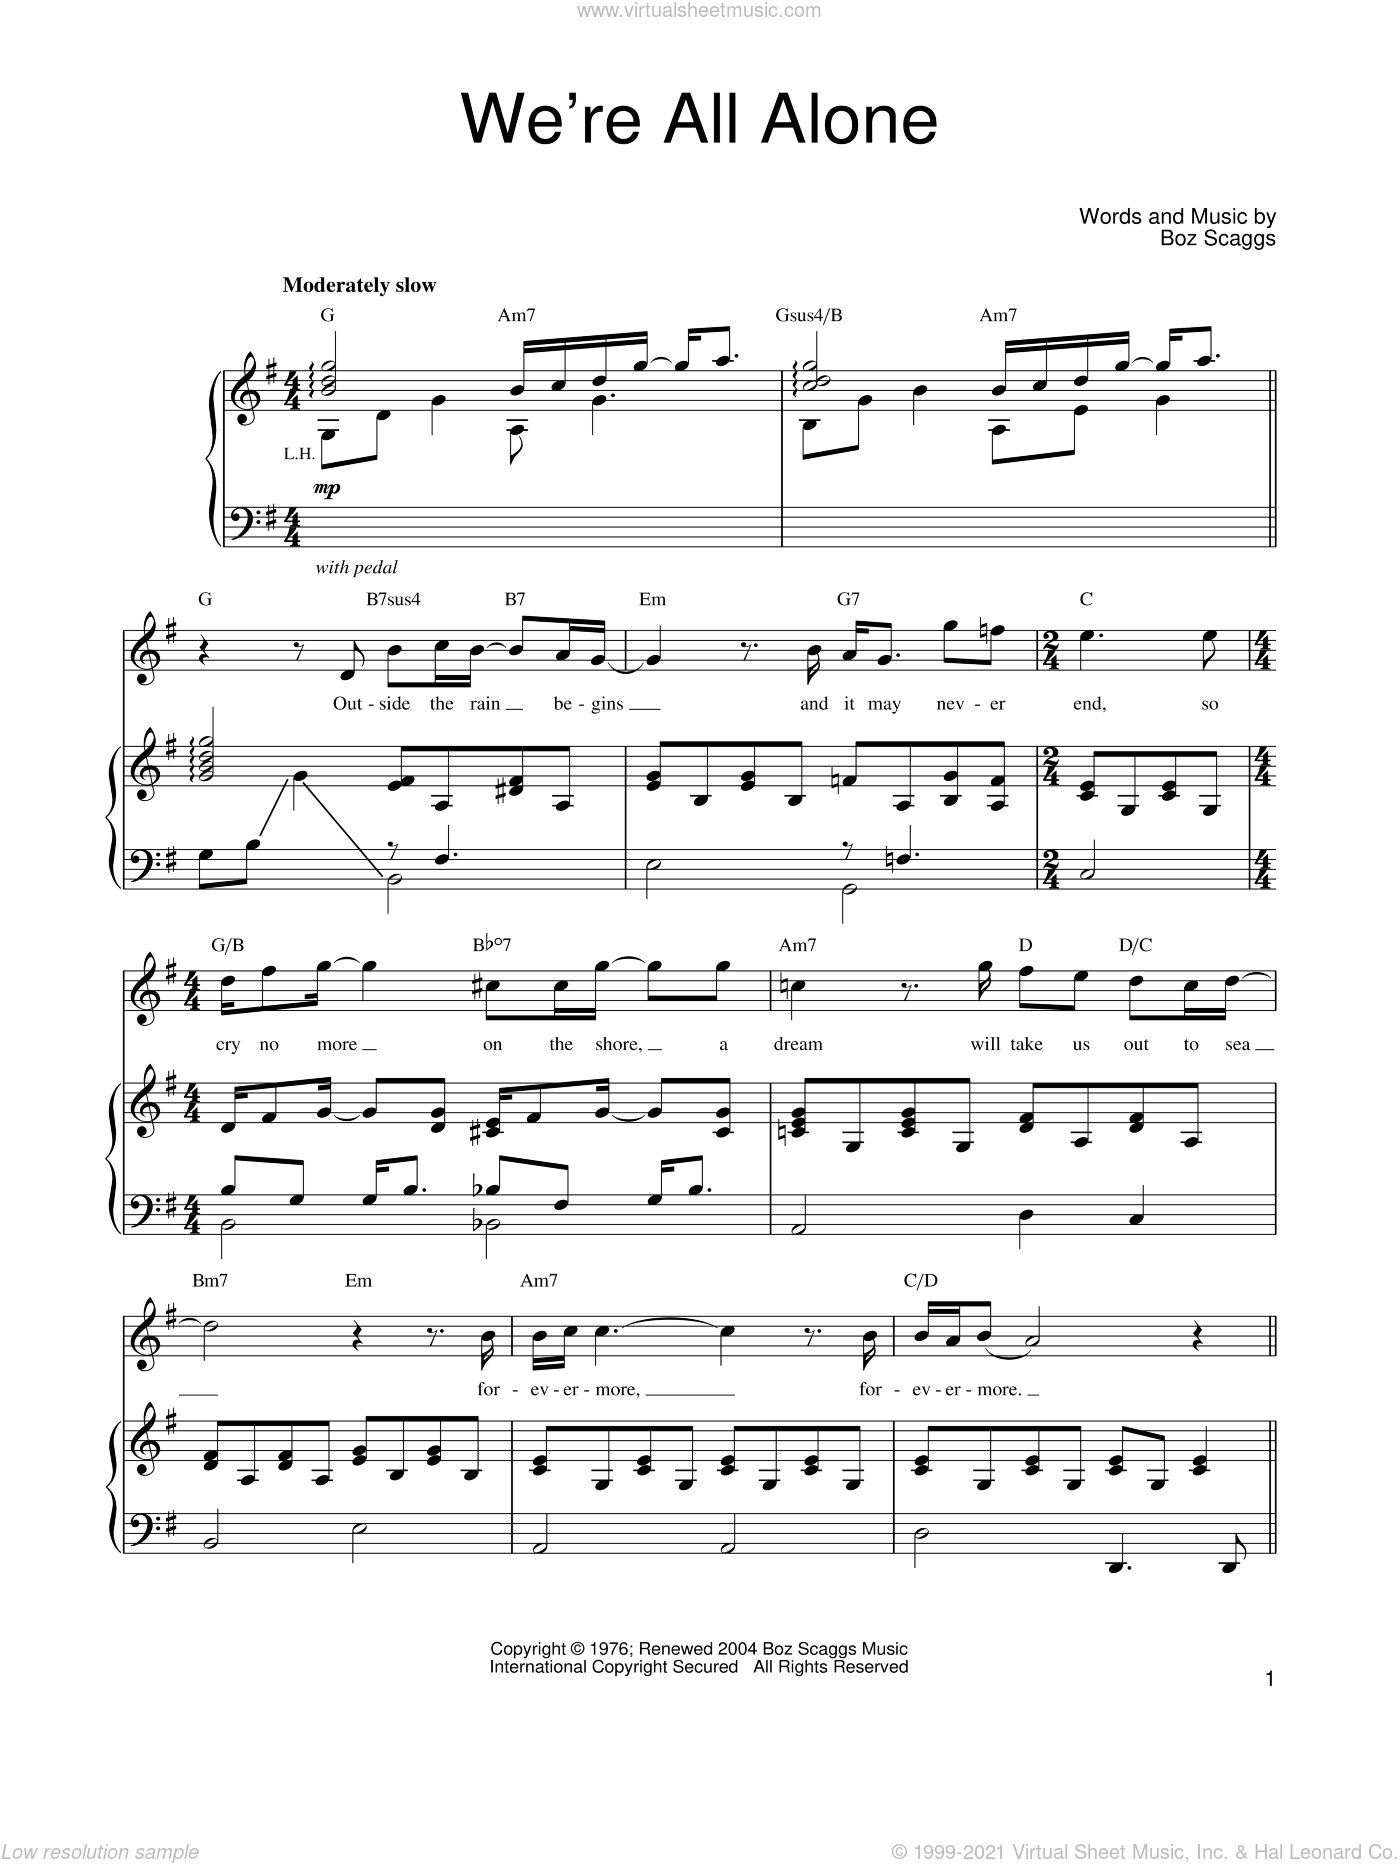 We're All Alone sheet music for voice, piano or guitar by Boz Scaggs, intermediate skill level